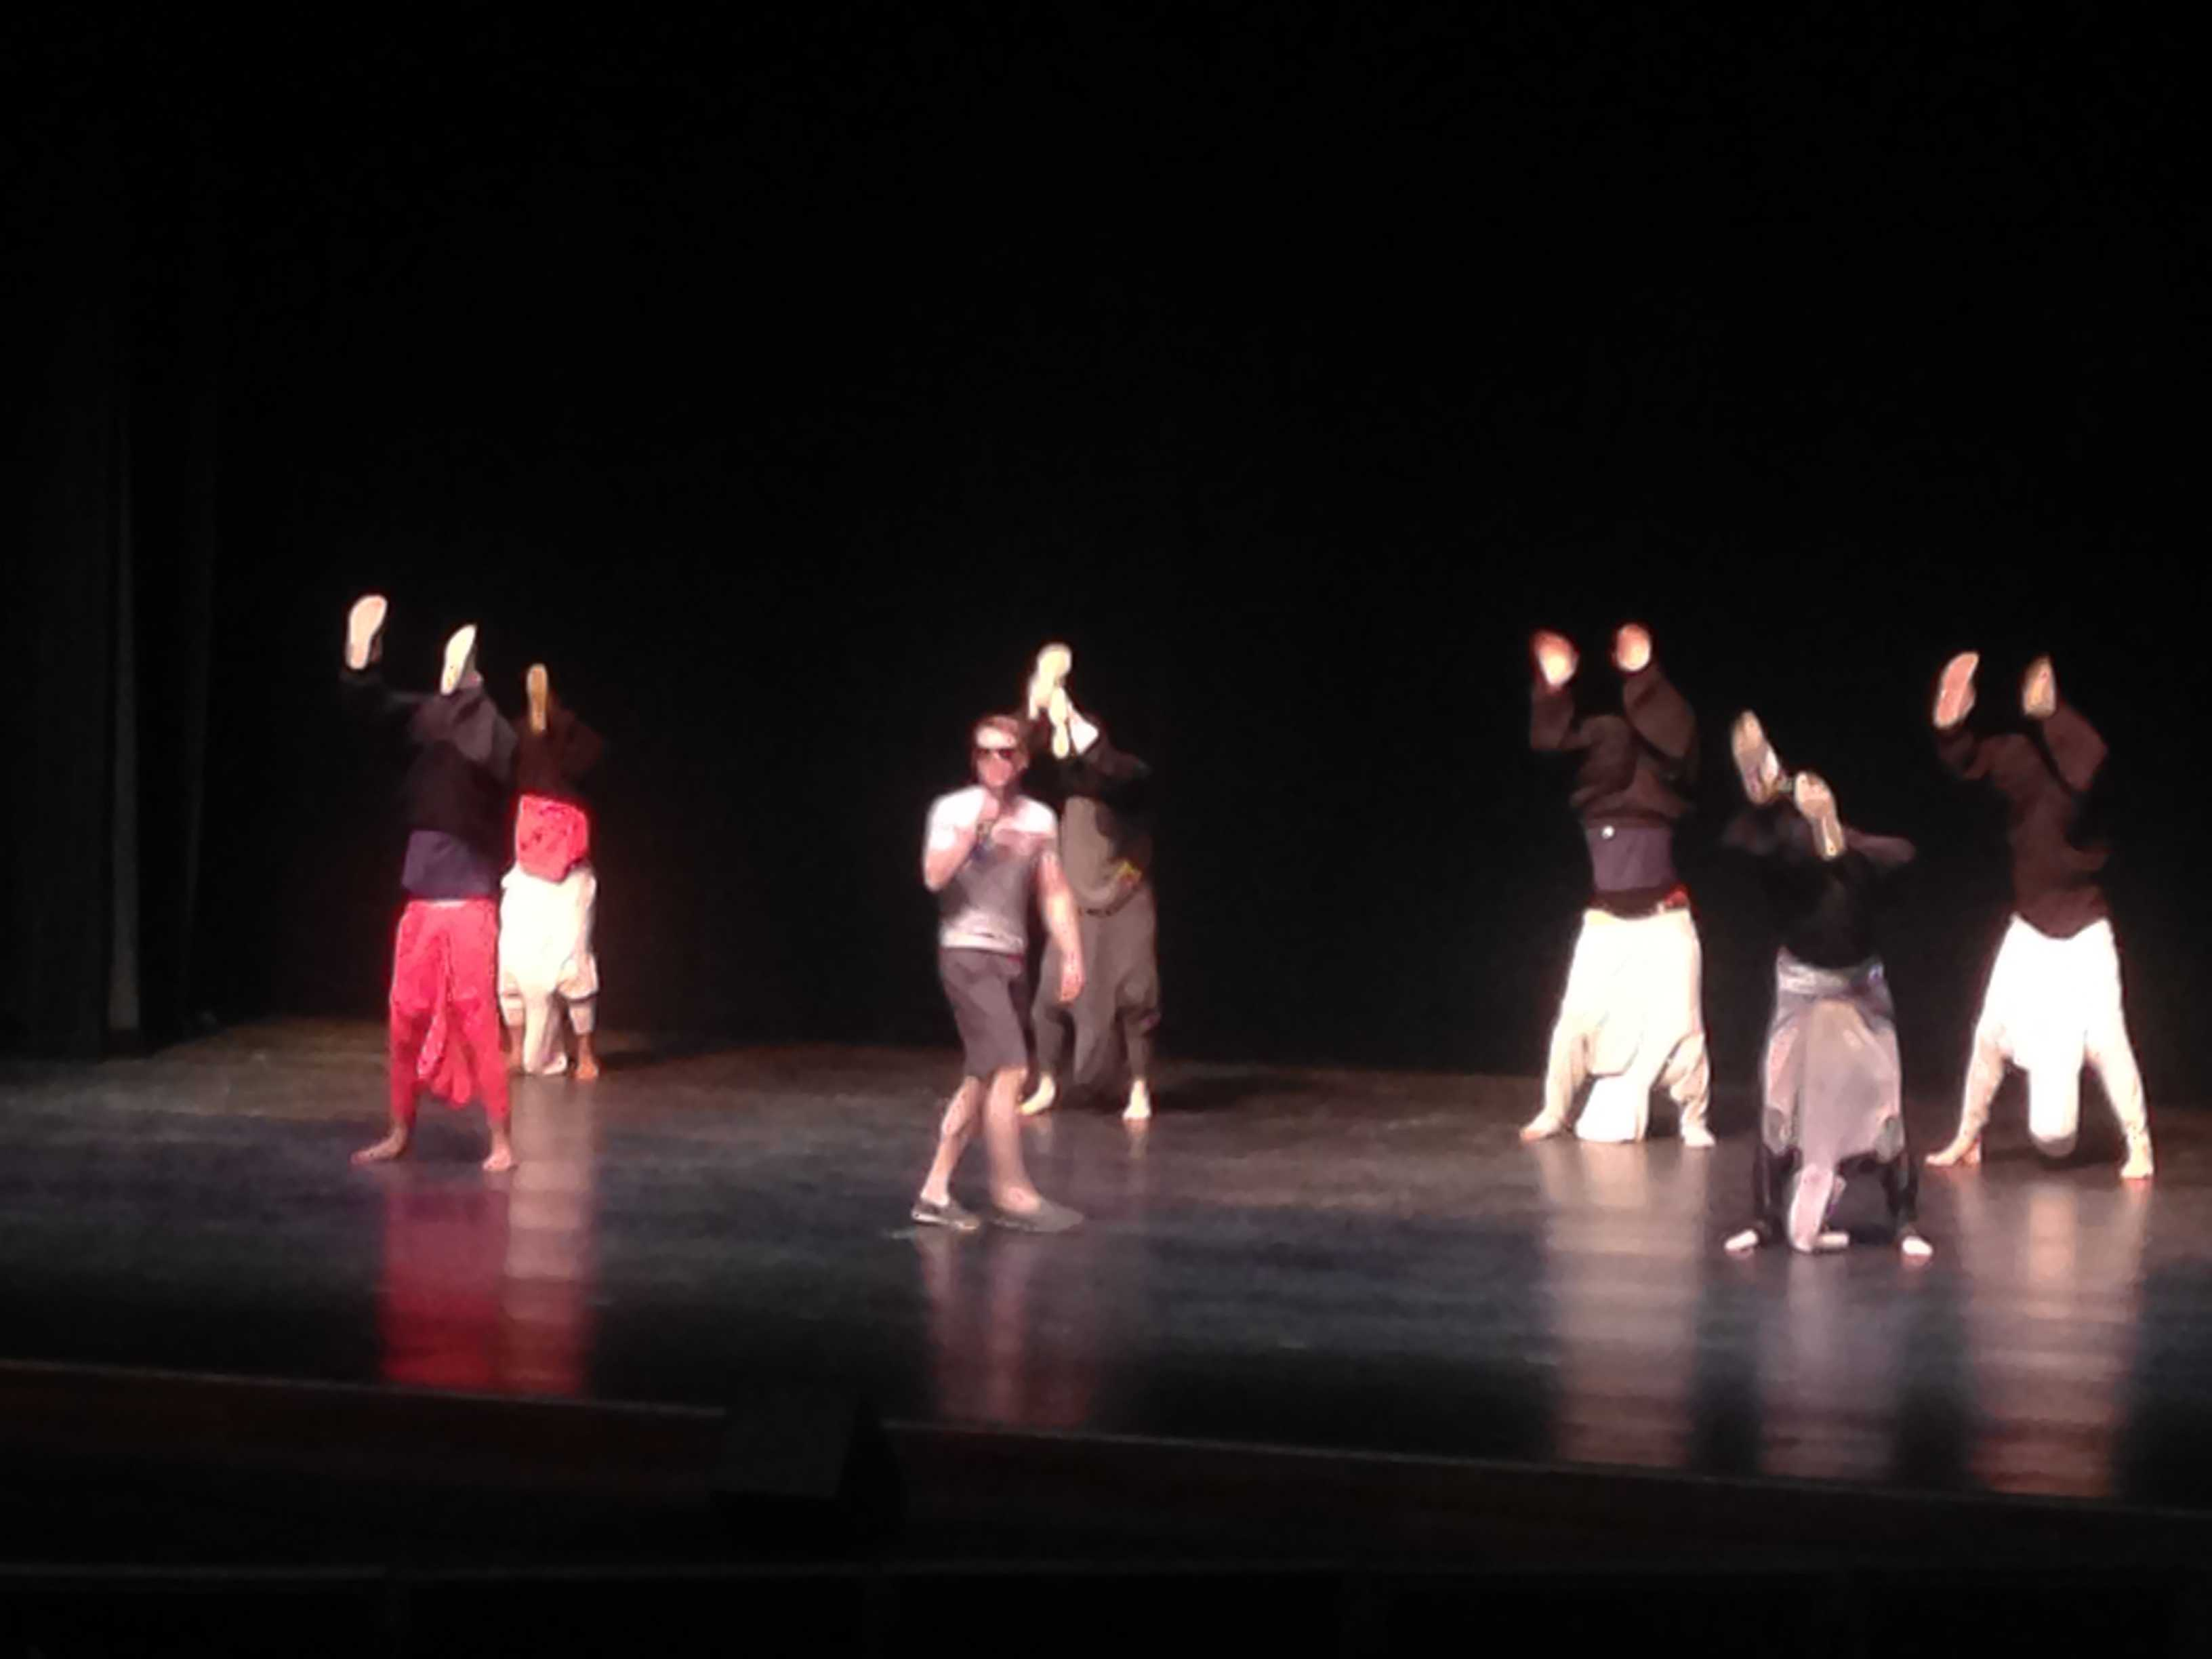 Tau Kappa Epsilon gives a fun performance to summer songs of the 90's.